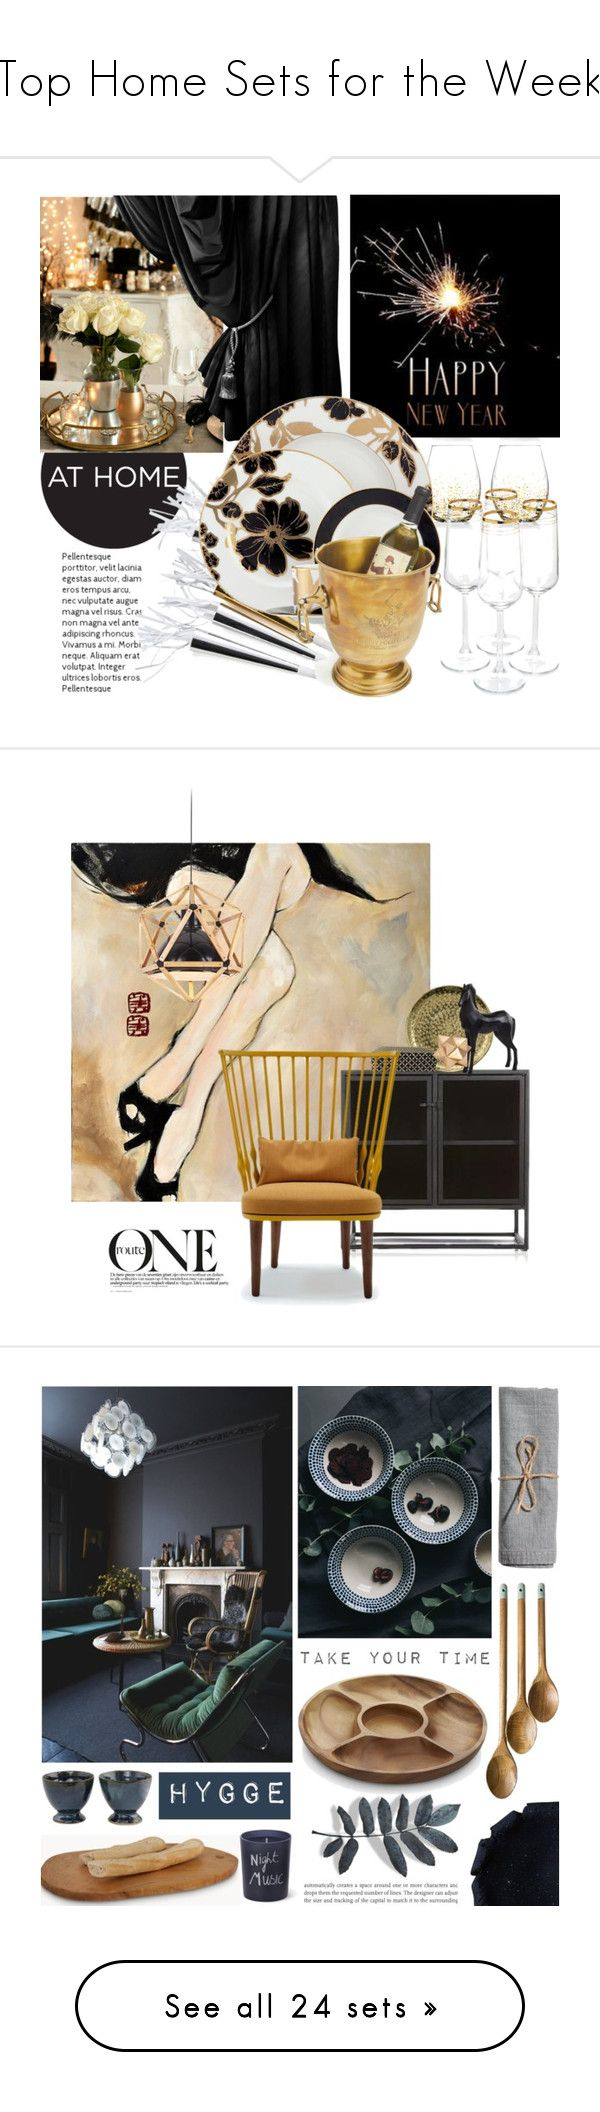 top home decor interior design.  Top Home Sets for the Week by polyvore liked on Polyvore featuring interior interiors design home decor decorating